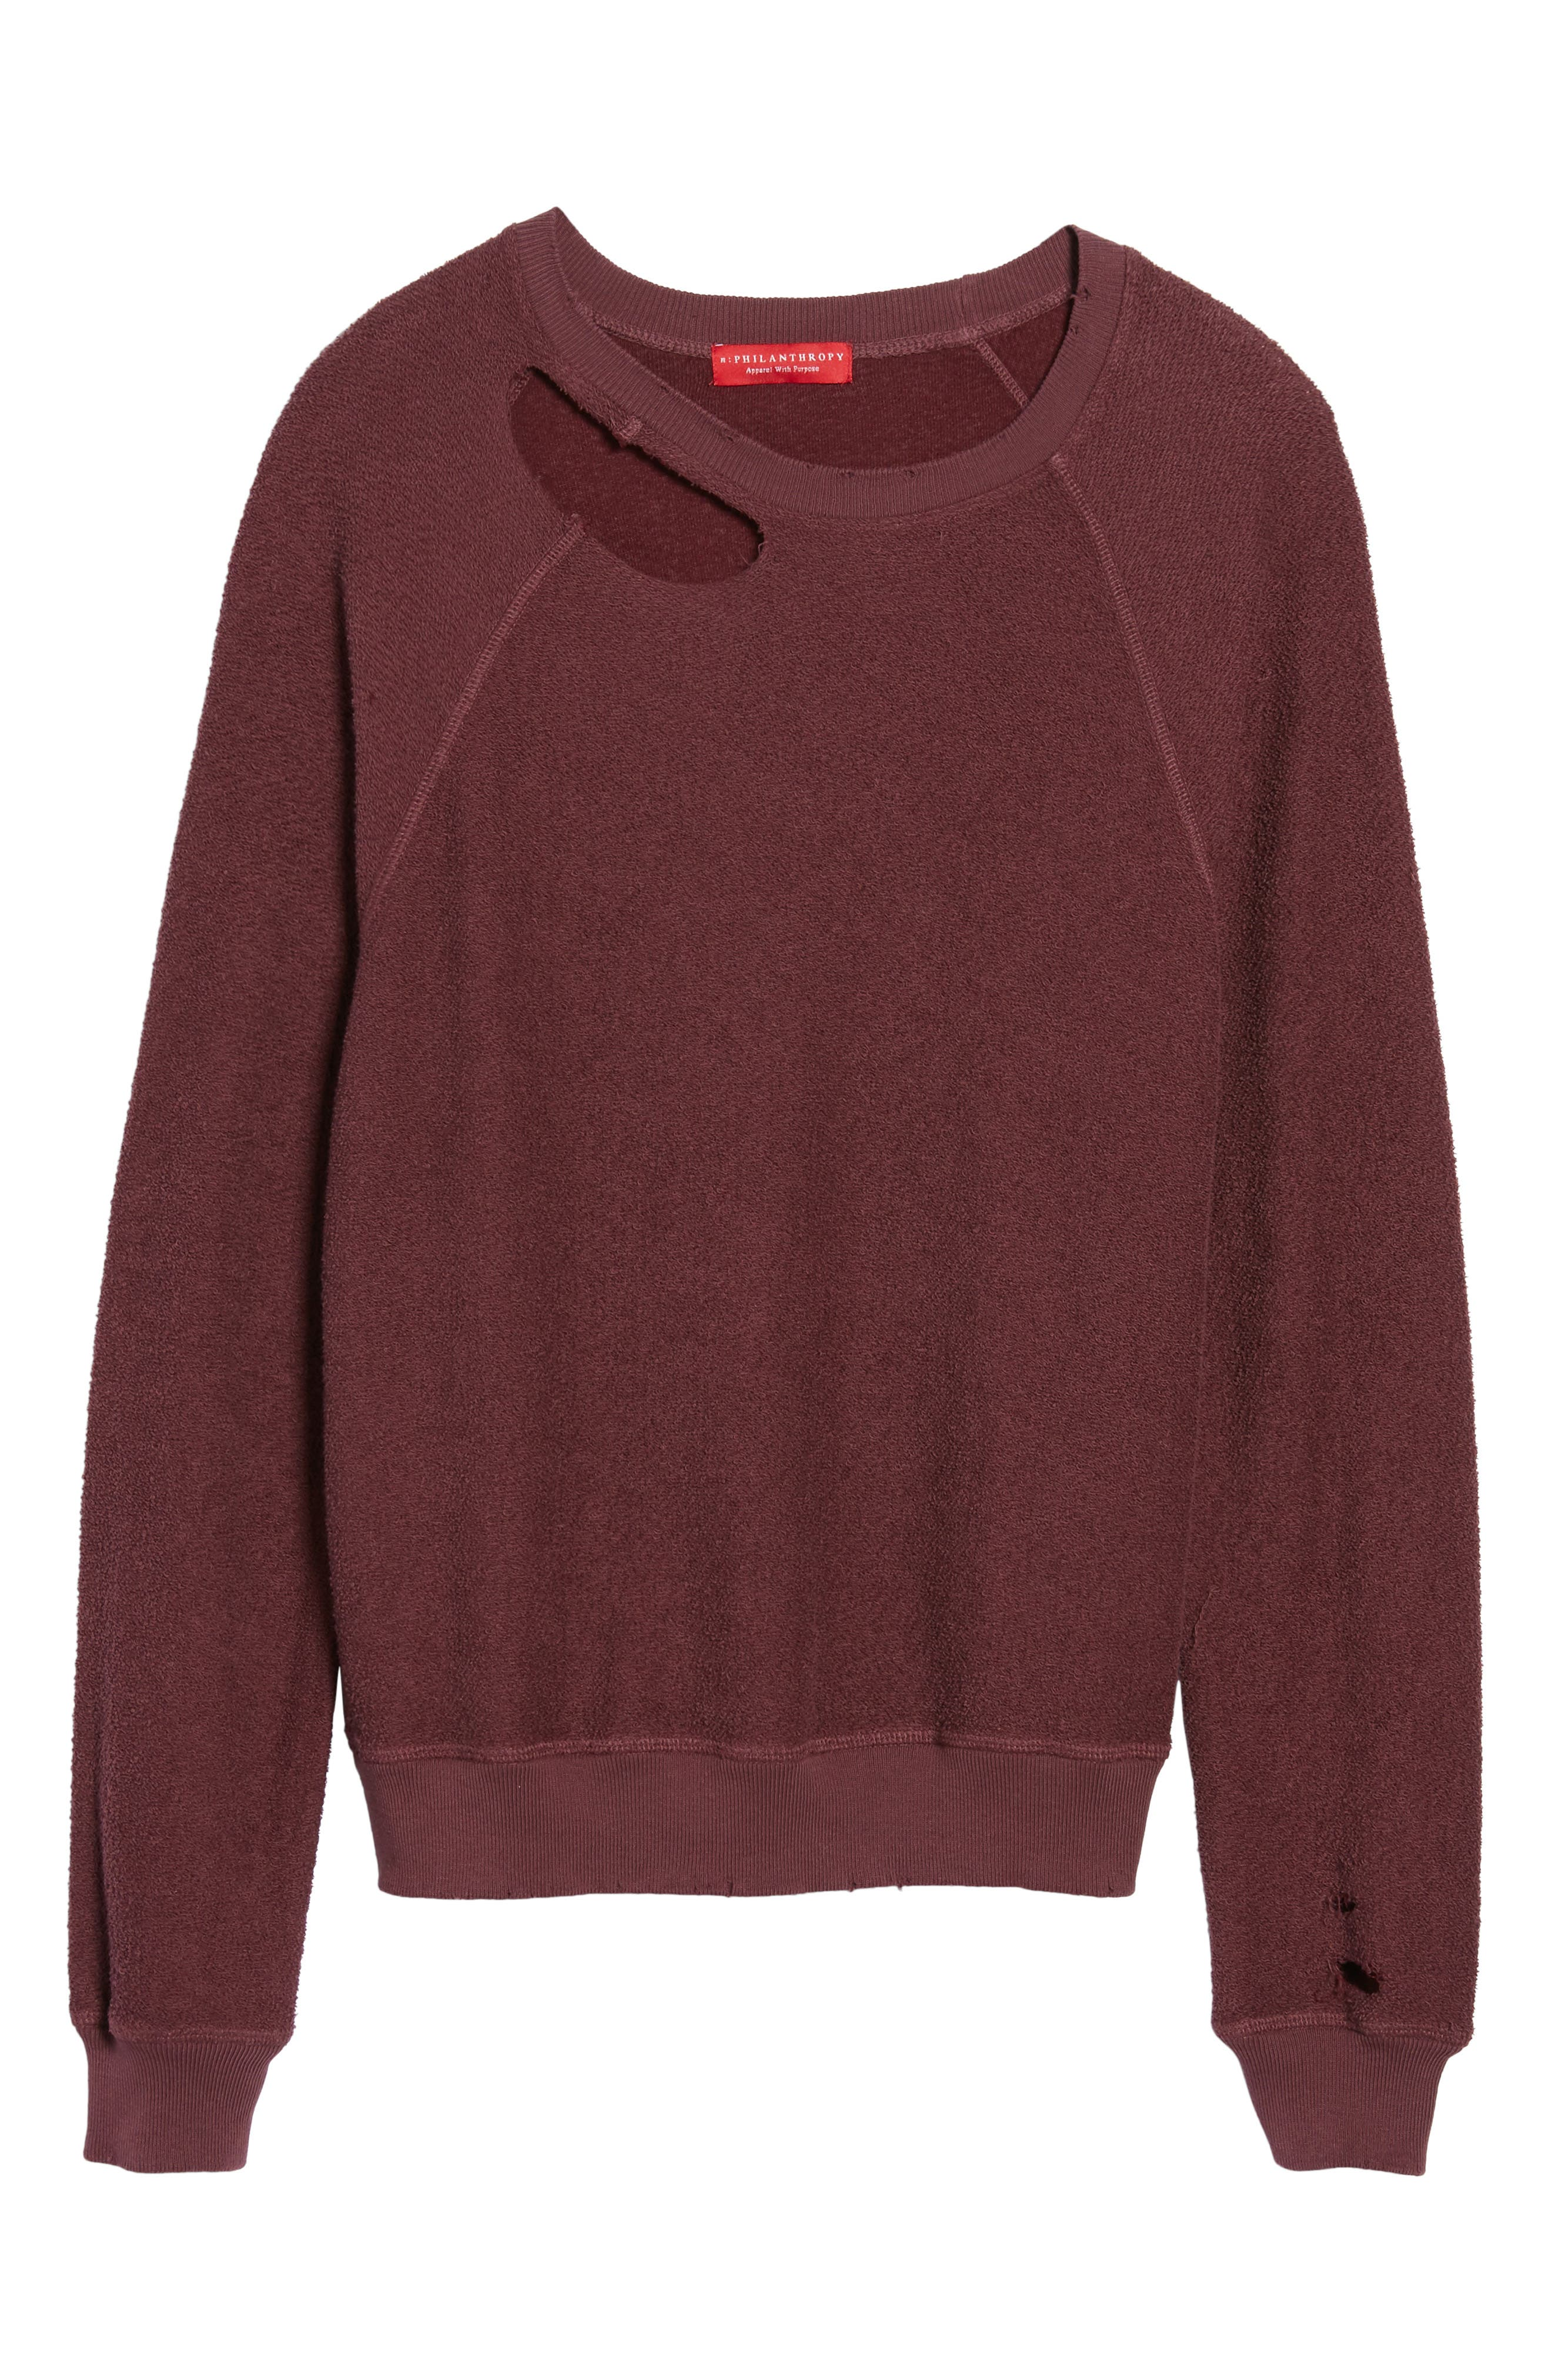 Holden Reverse Distressed Sweatshirt,                             Alternate thumbnail 6, color,                             930